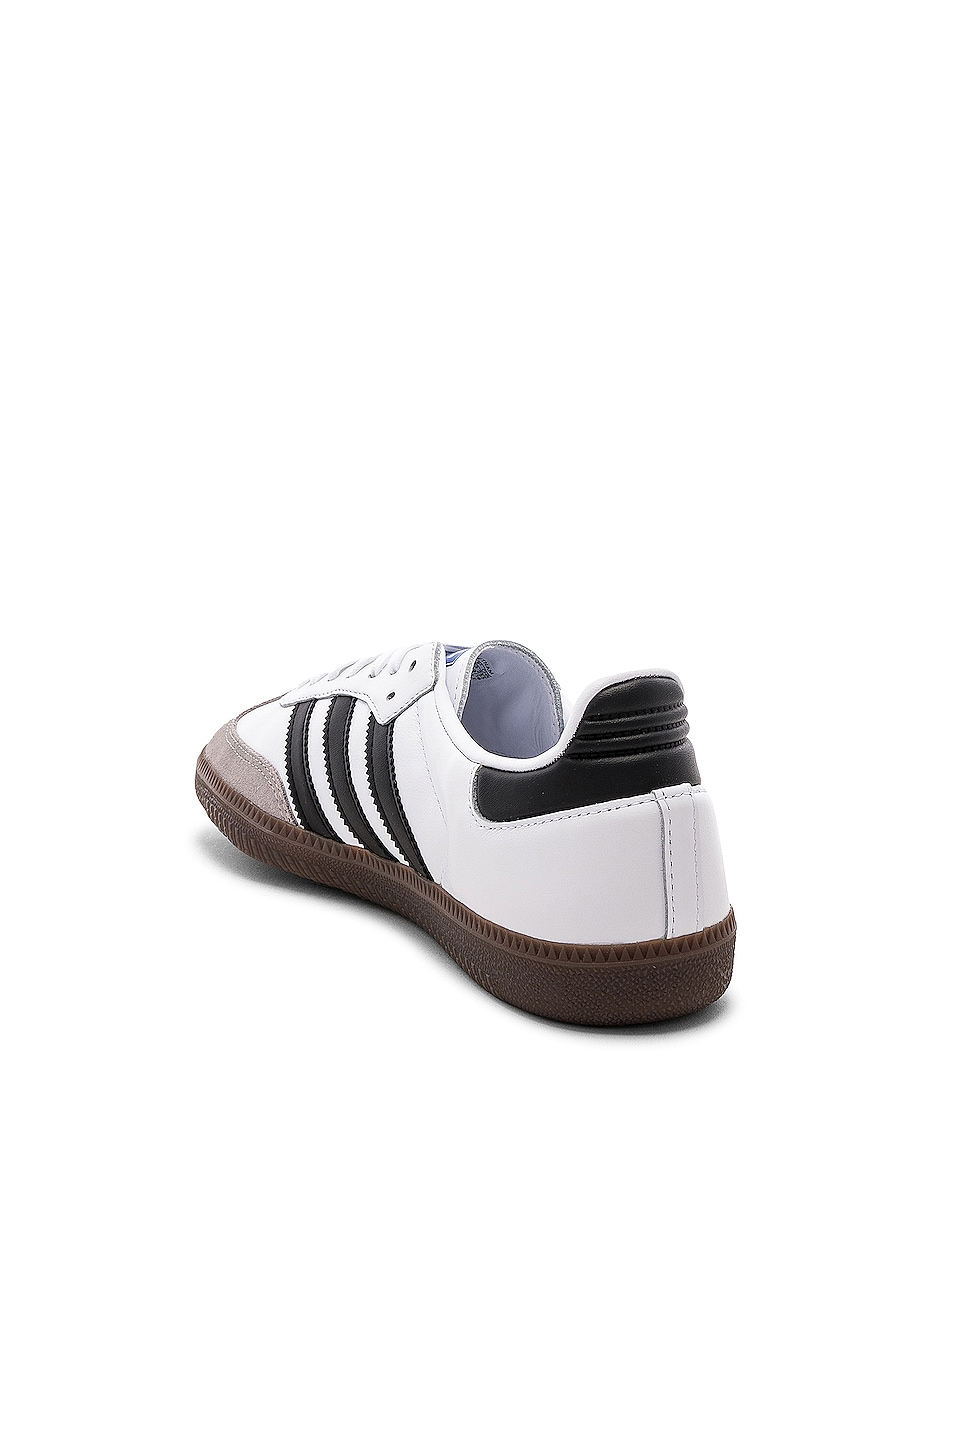 Image 3 of adidas Originals Samba in White & Black & Clear Granite